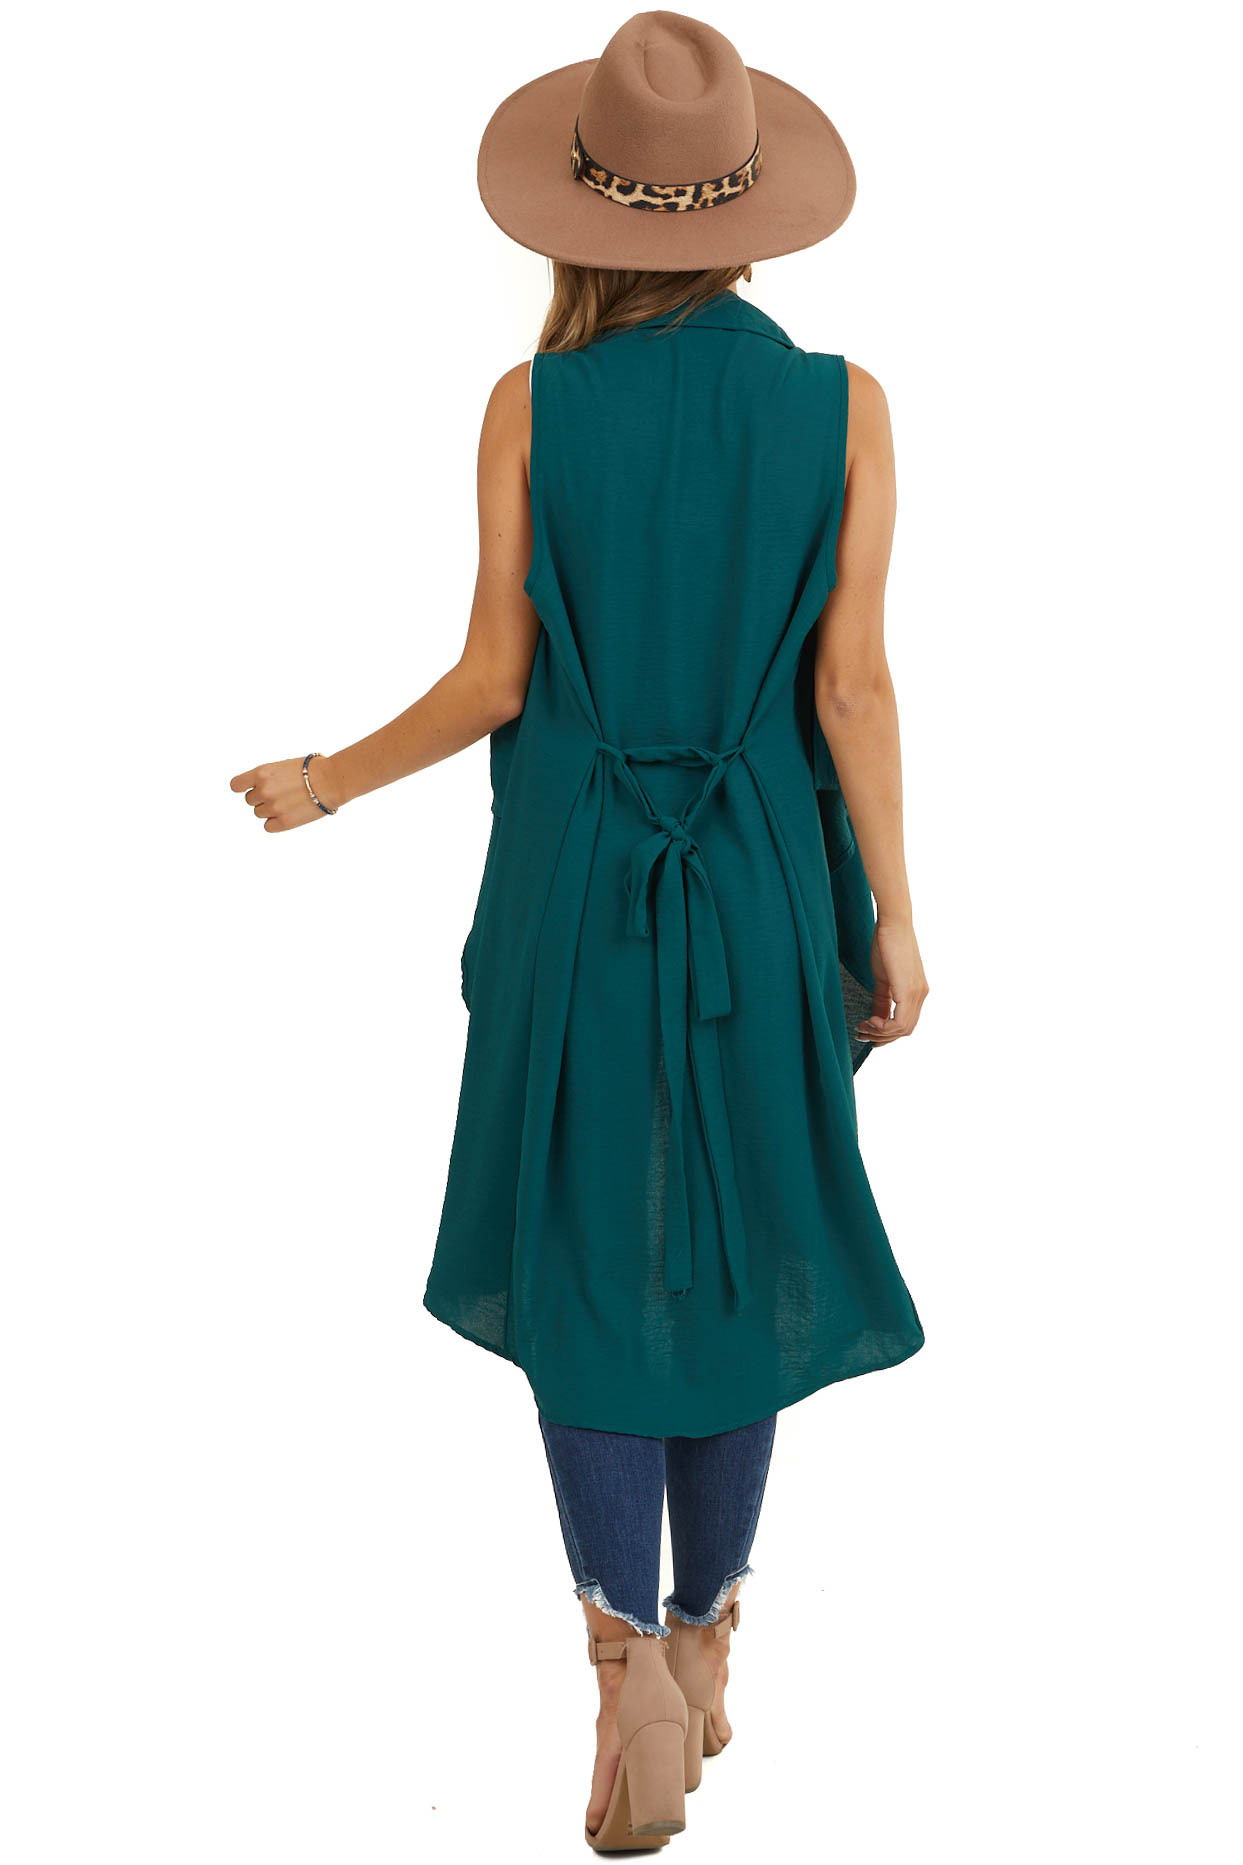 Pine Green Draped Duster Vest with Tie Detail